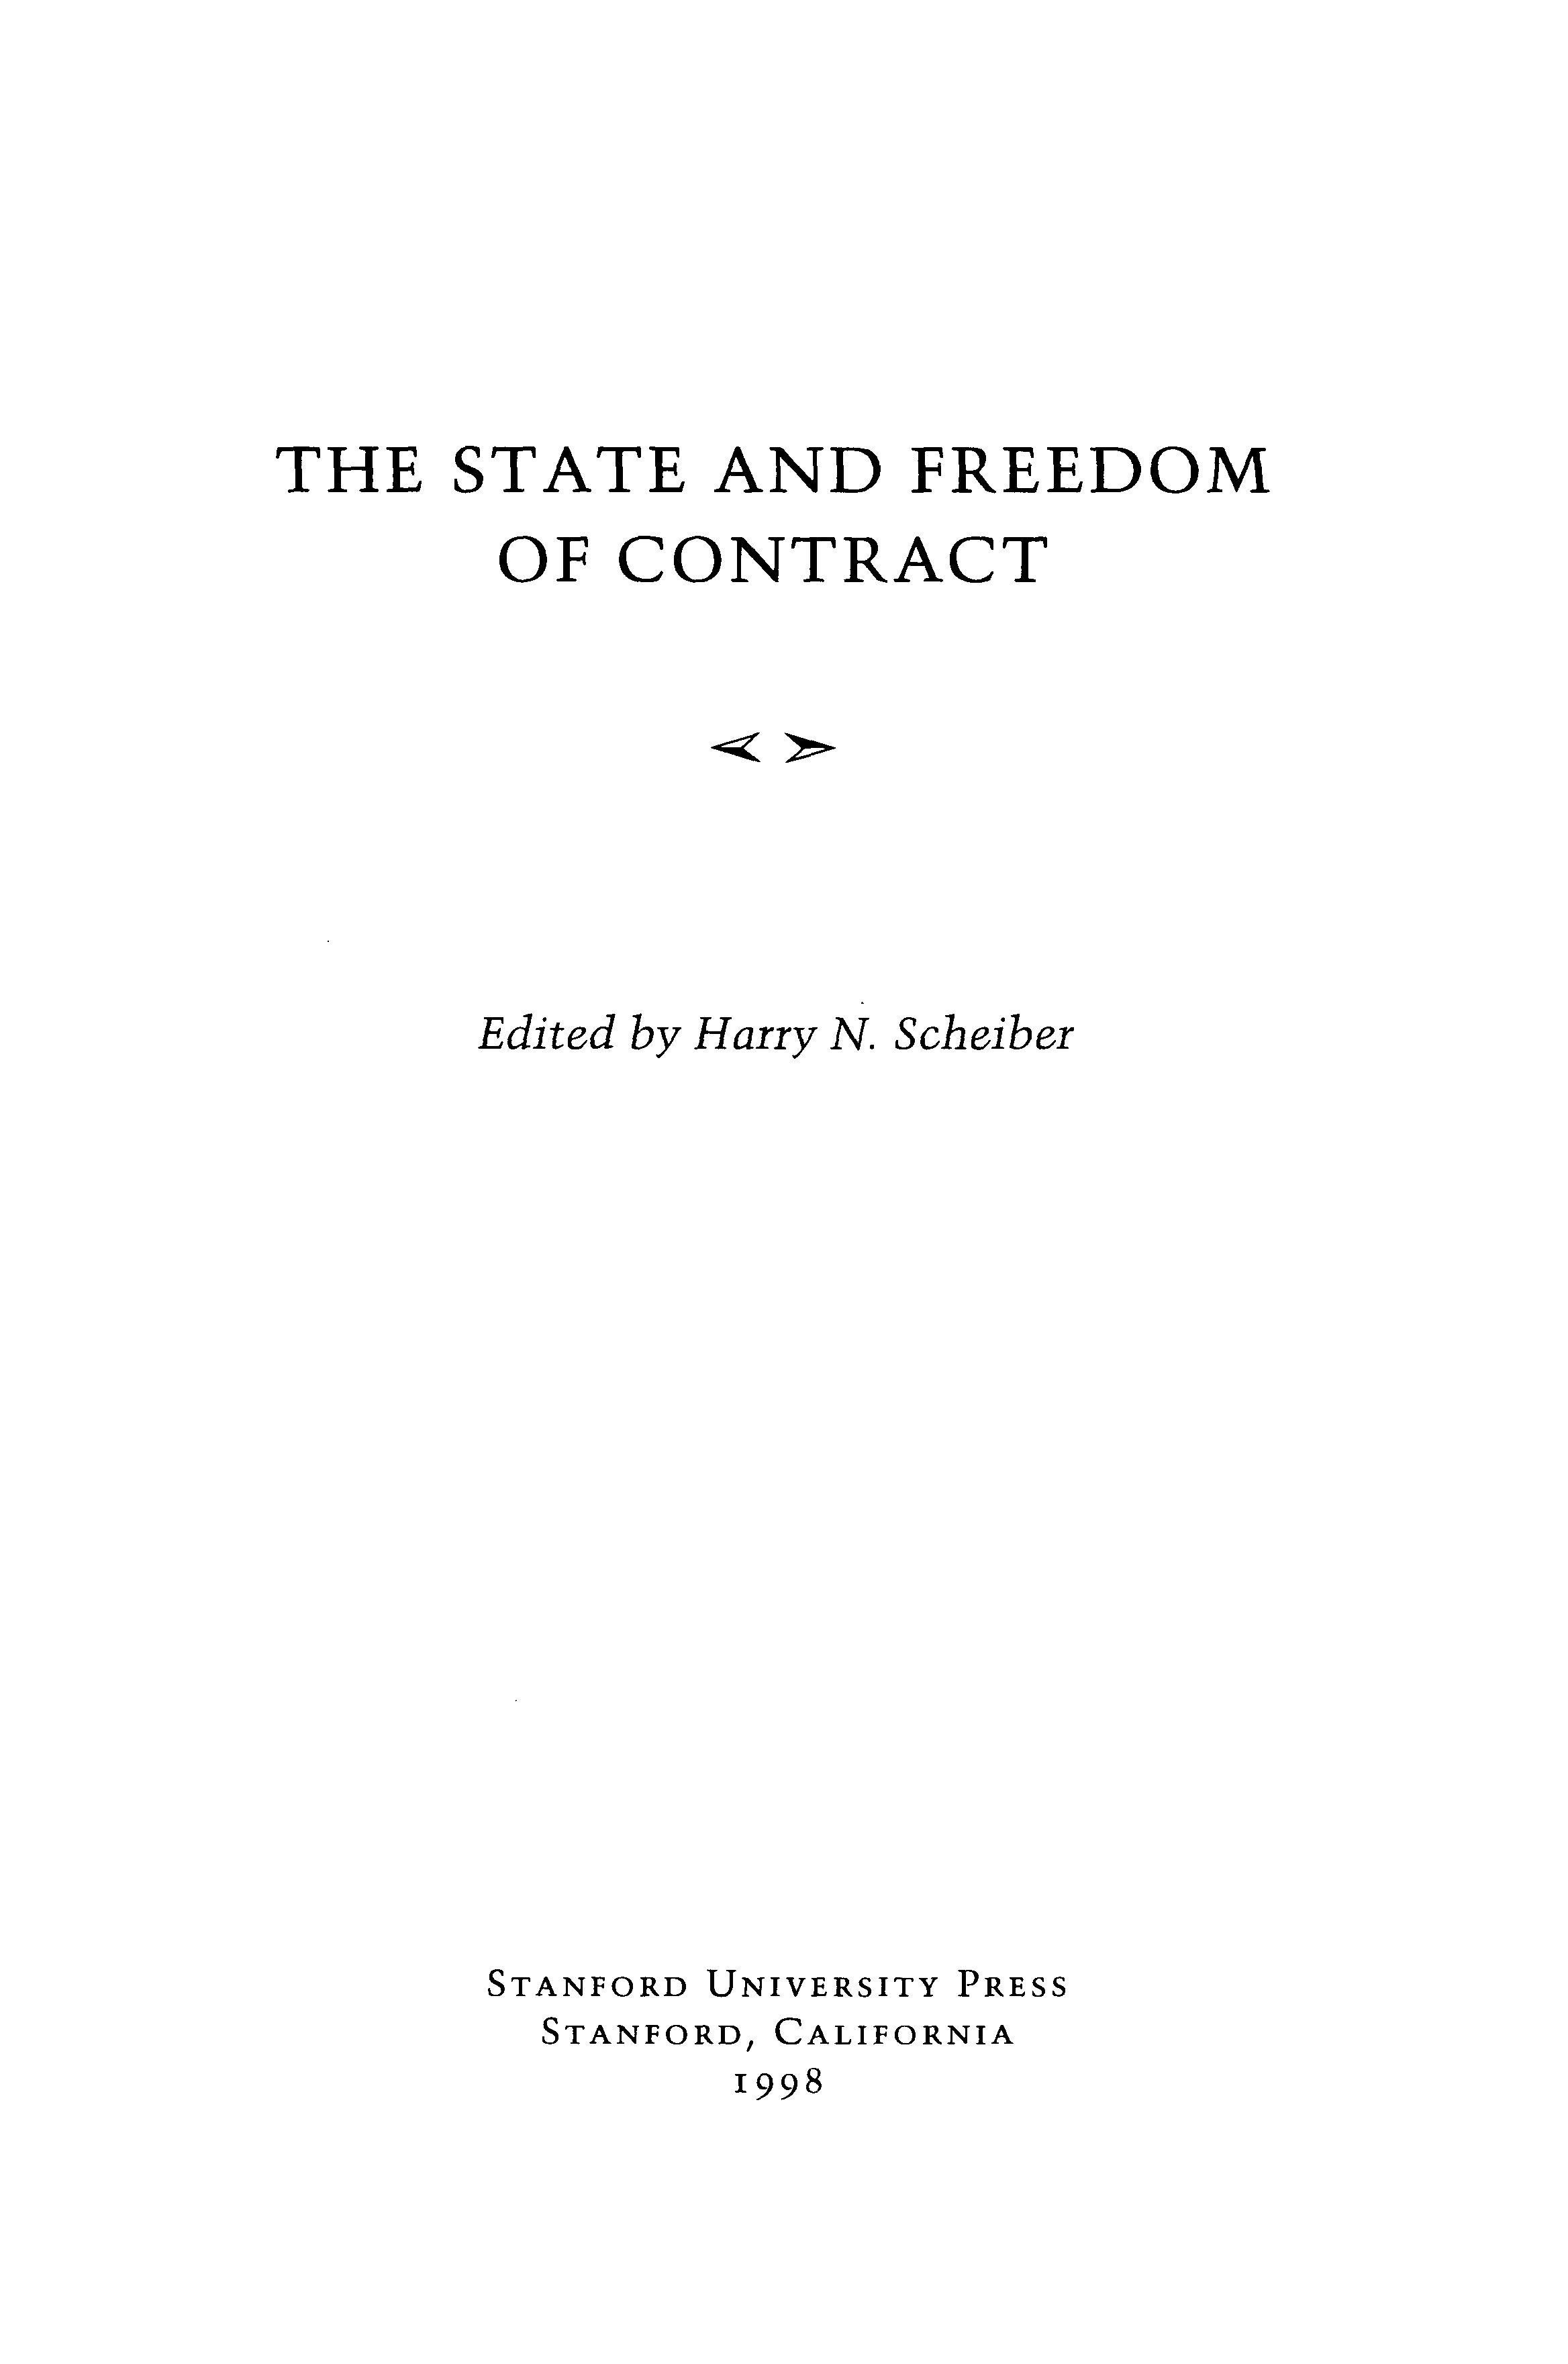 The state and freedom of contract